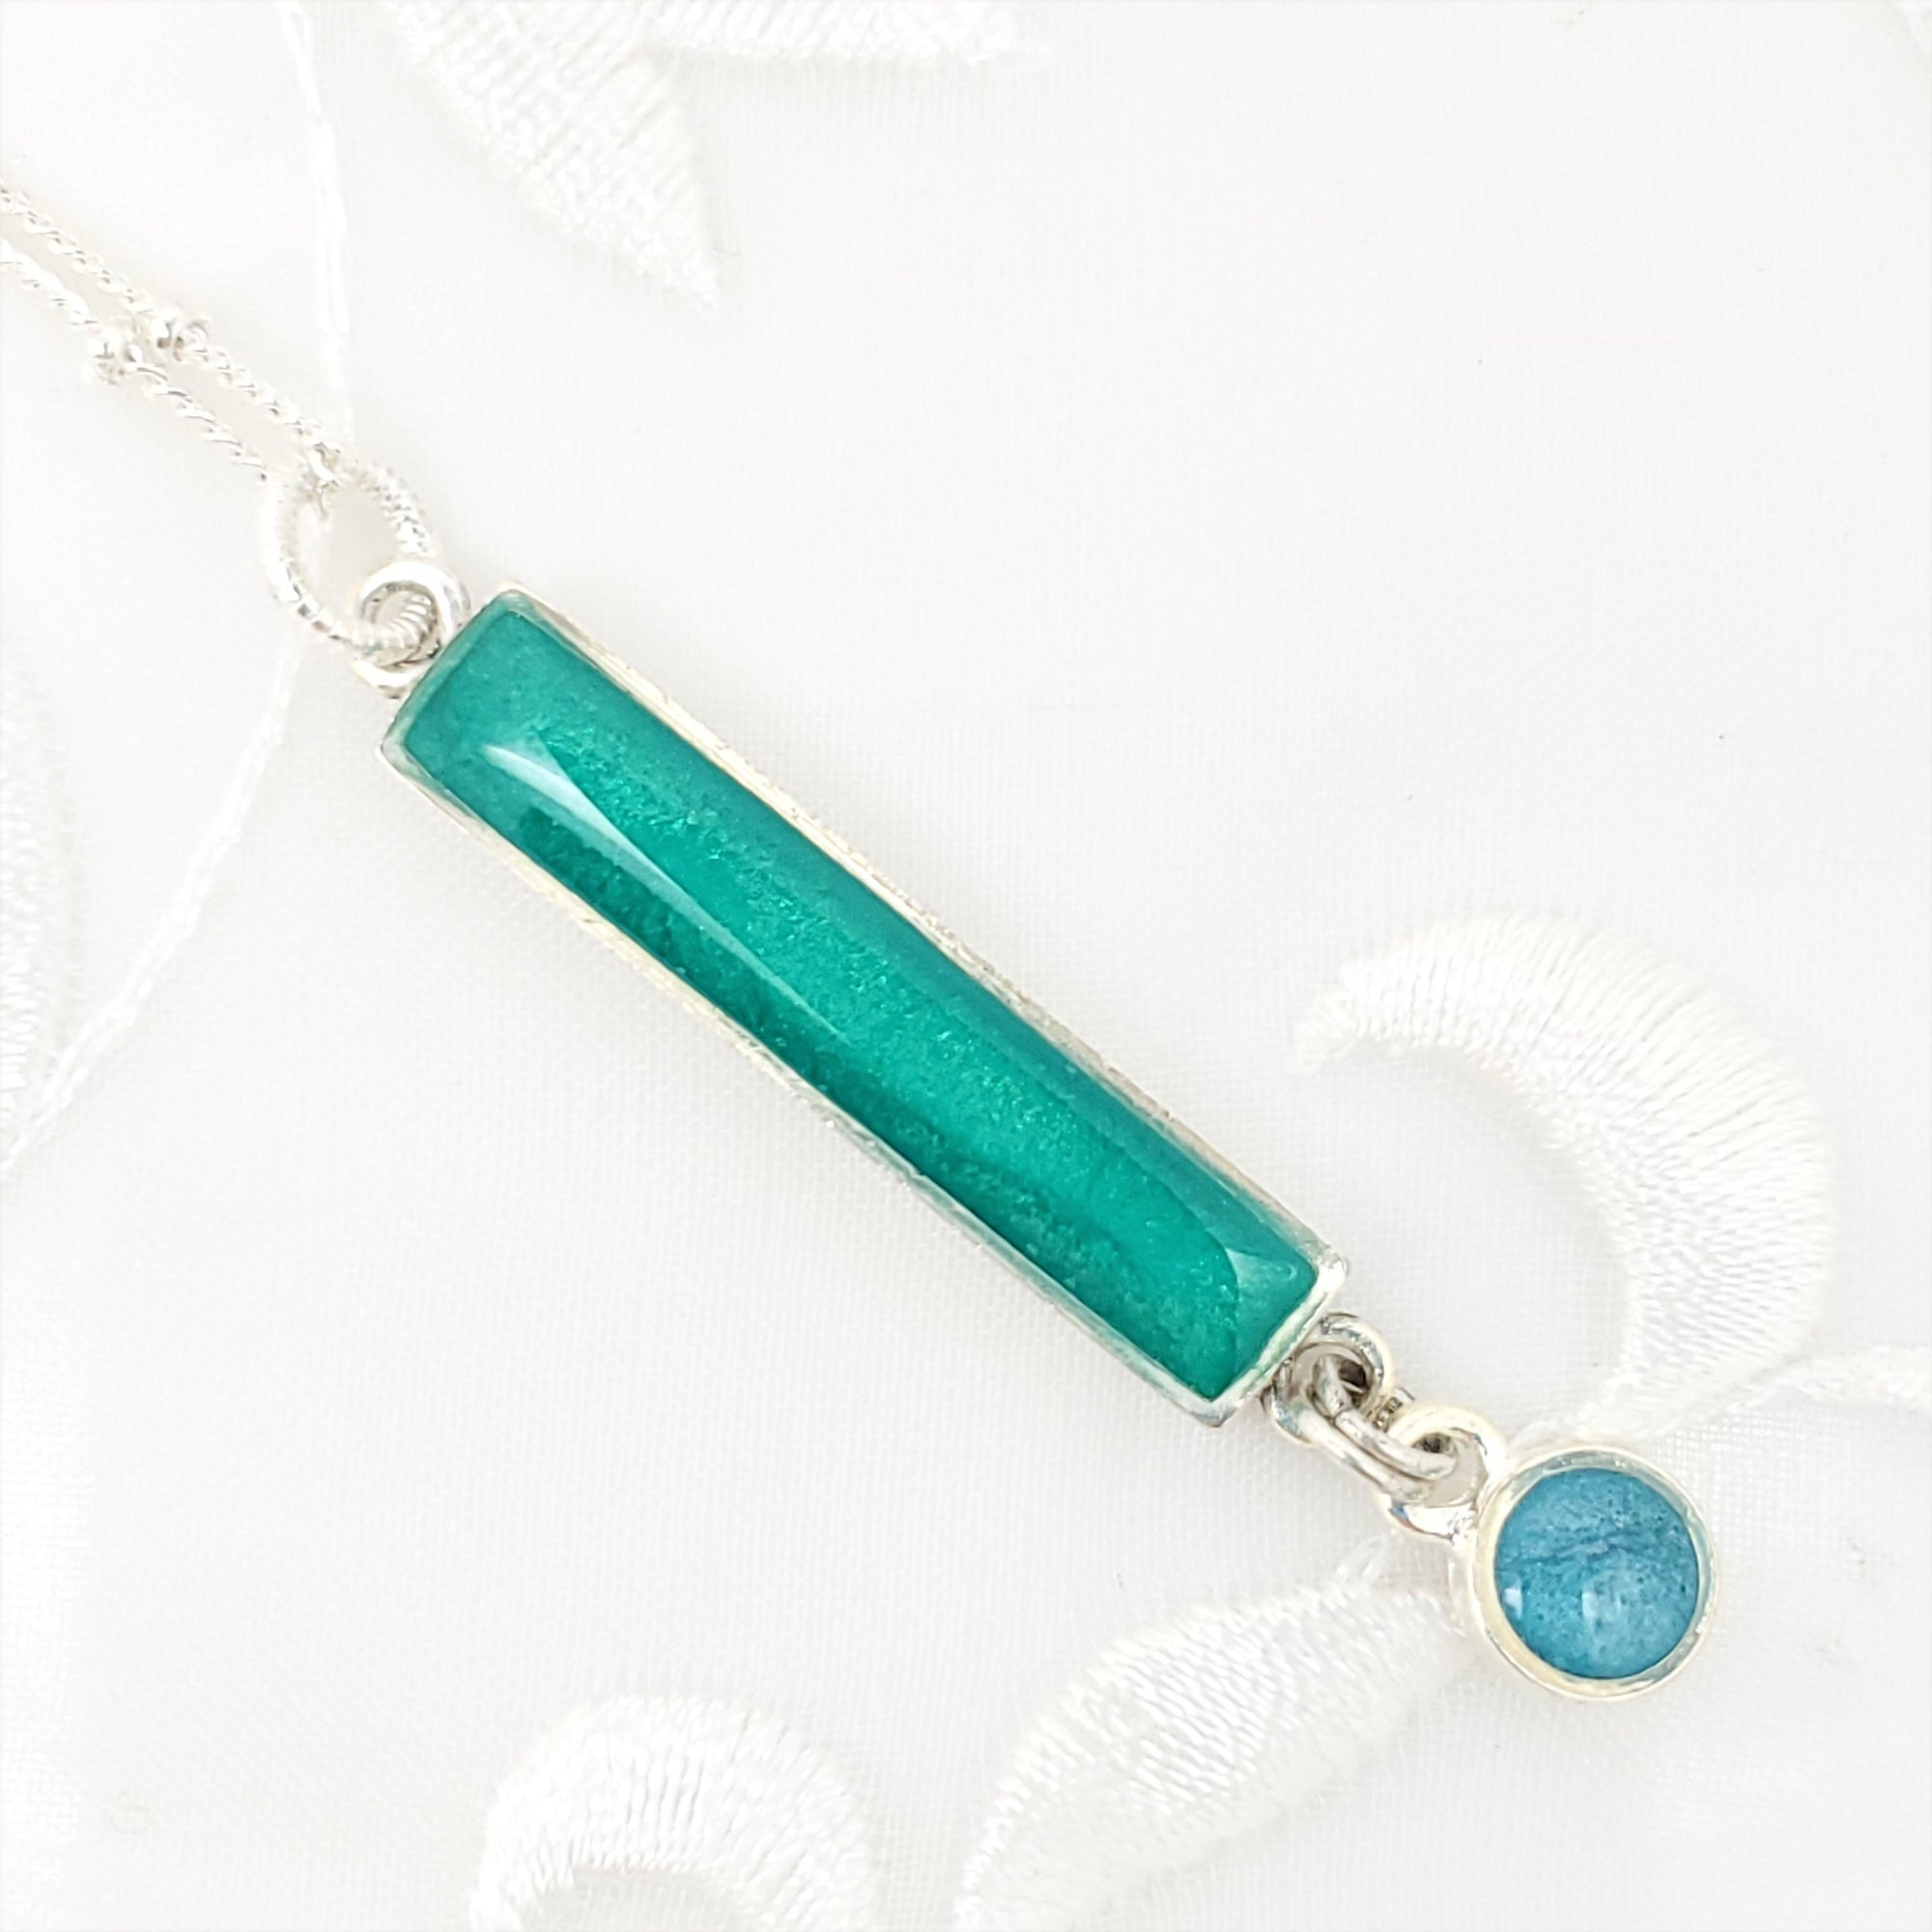 Antique Silver Bar Pendant Necklace with Pearlized Green and Blue Resin